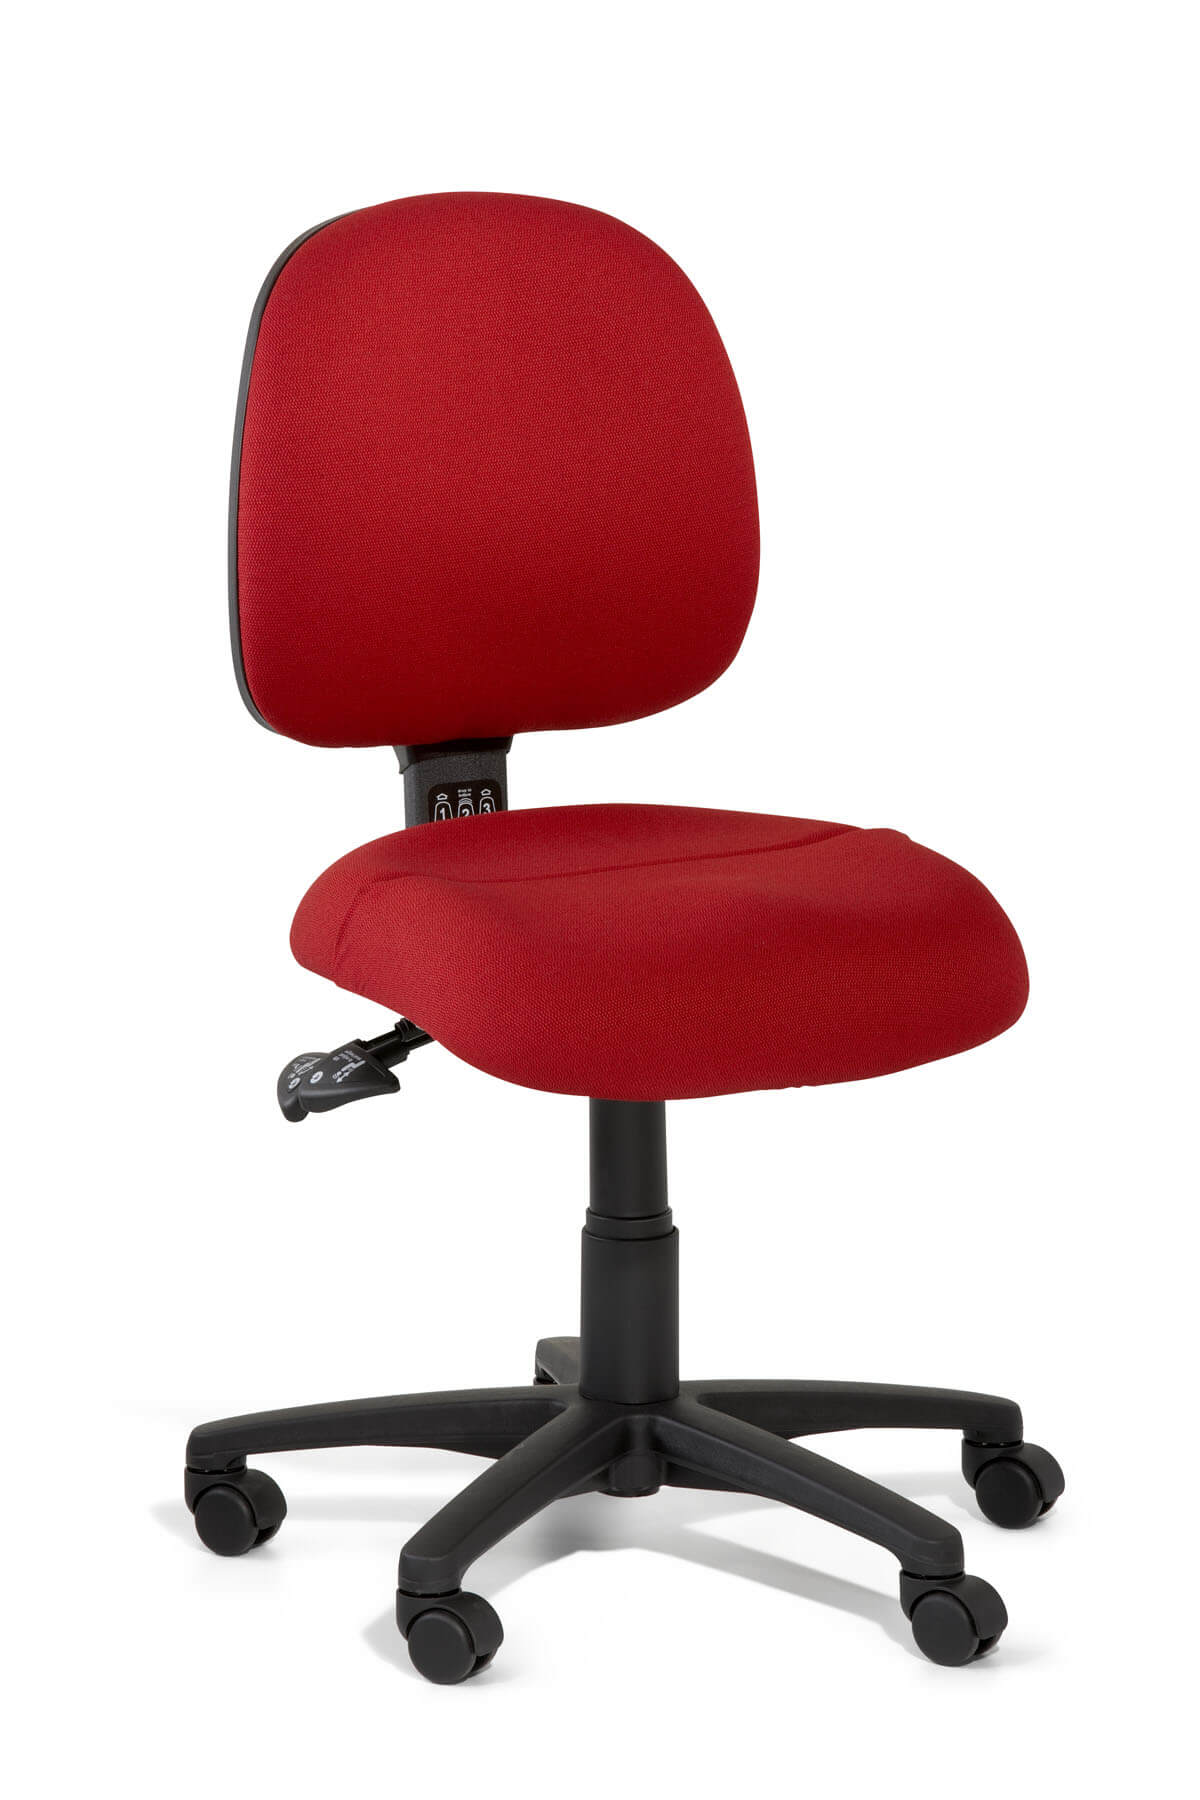 back support for office chairs australia wheel chair price bd gregory inca range centre